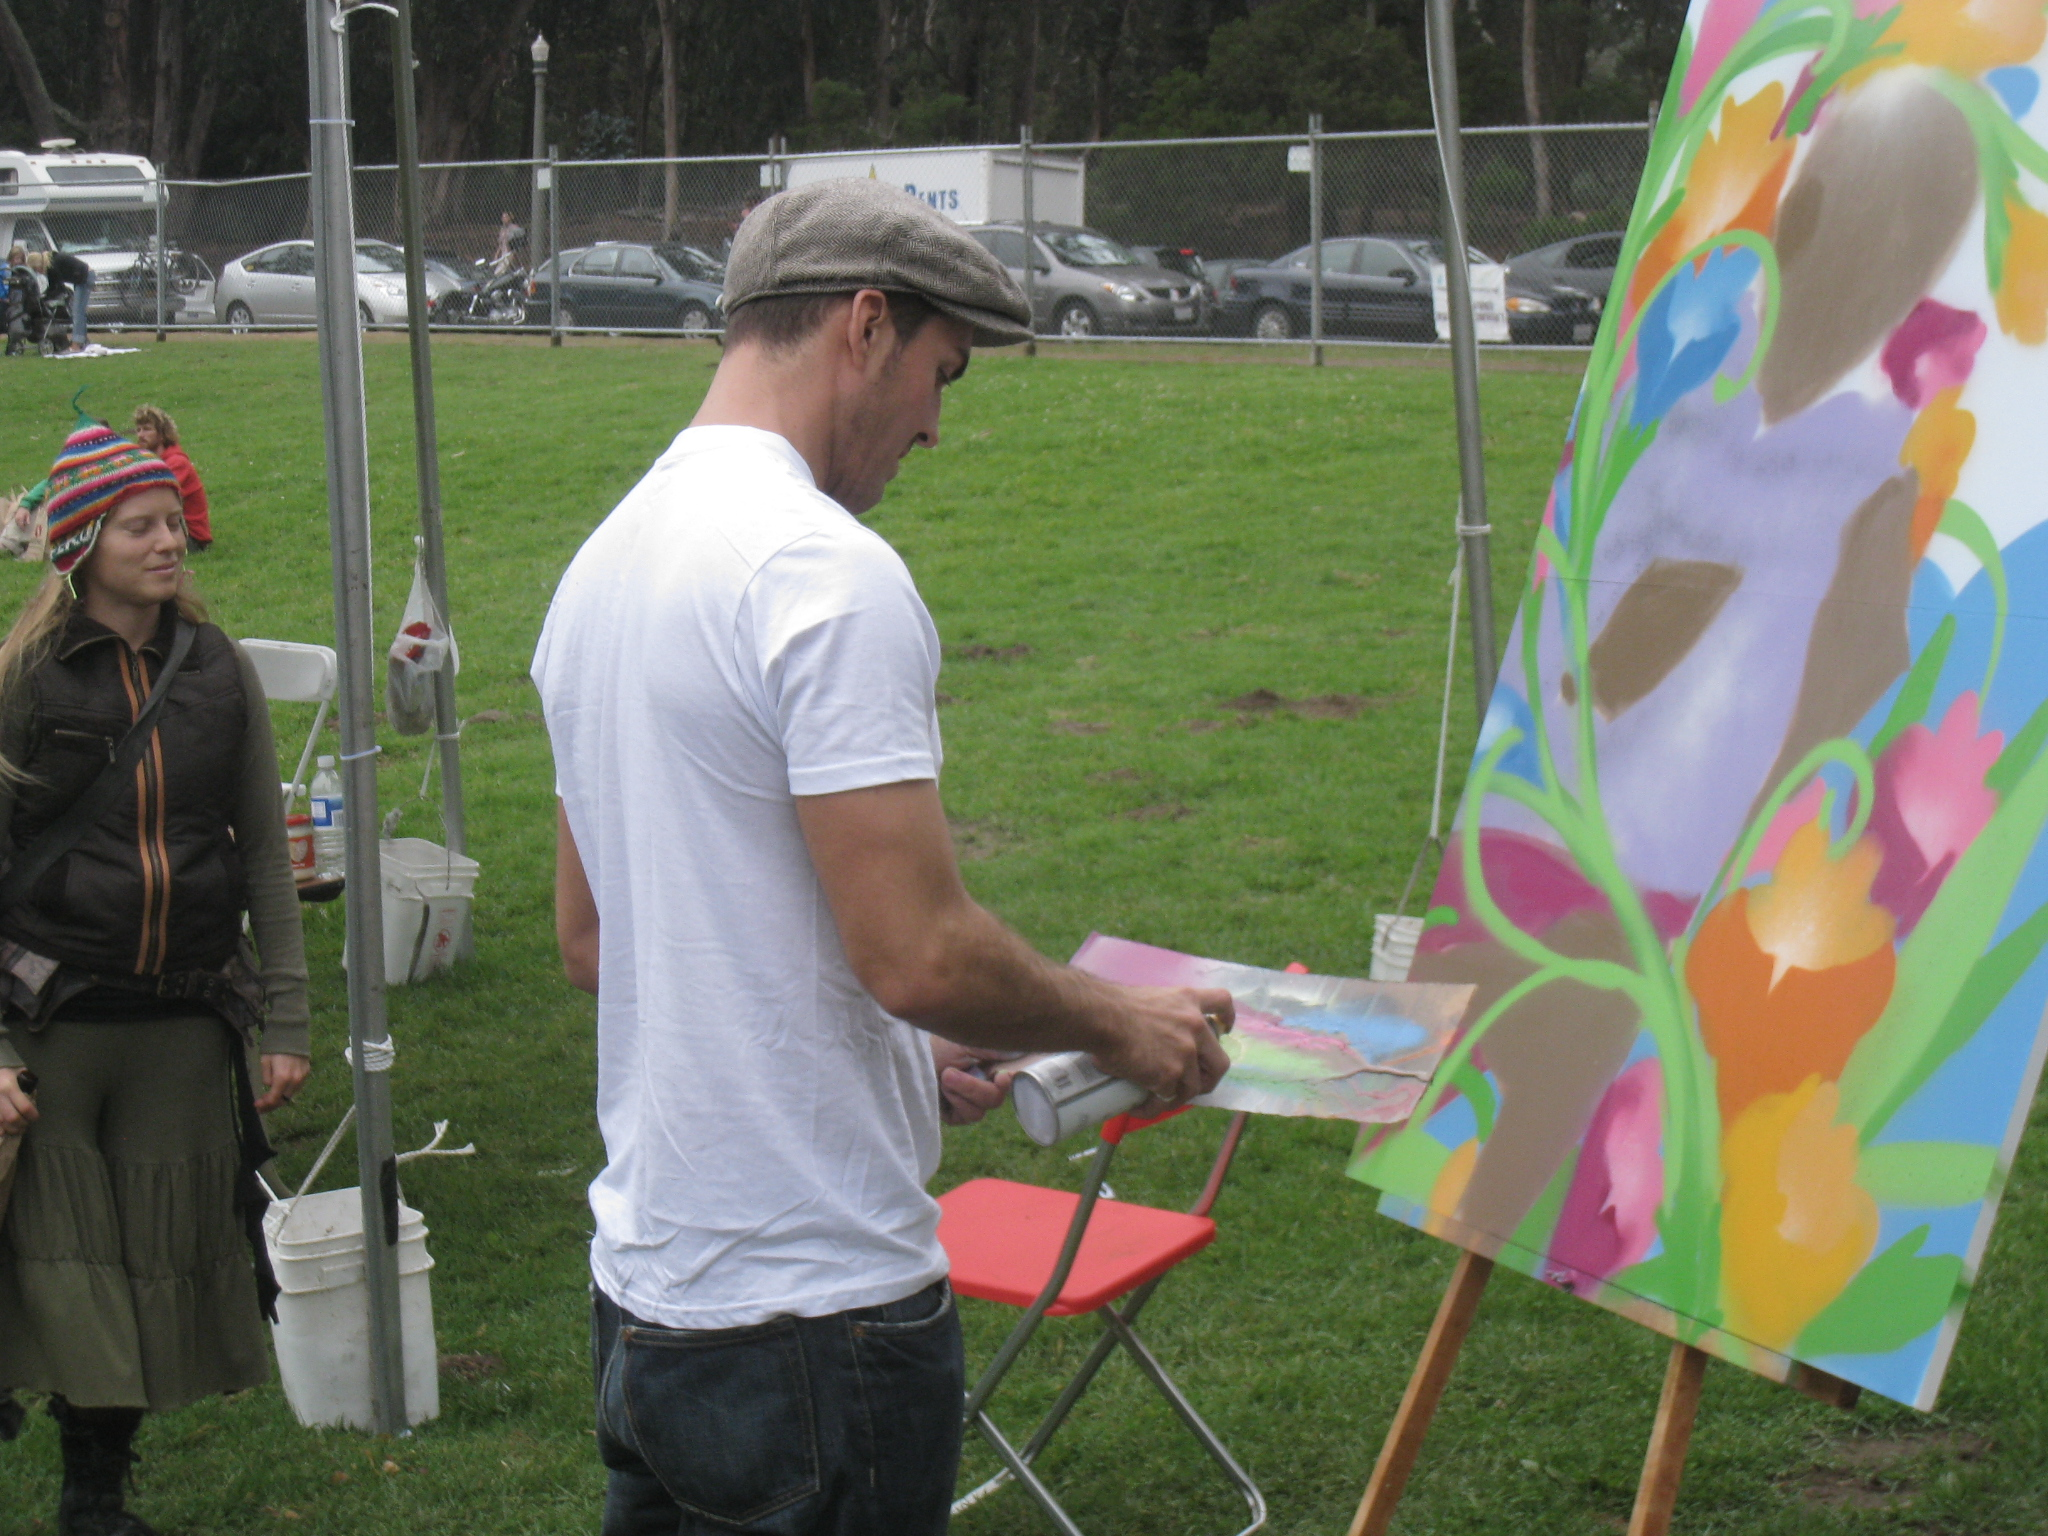 img 9556 Sam Flores, recap: live painting in Golden Gate Park upper playground Sam Flores power to the peaceful paint live painting graffiti fifty24sf gallery art